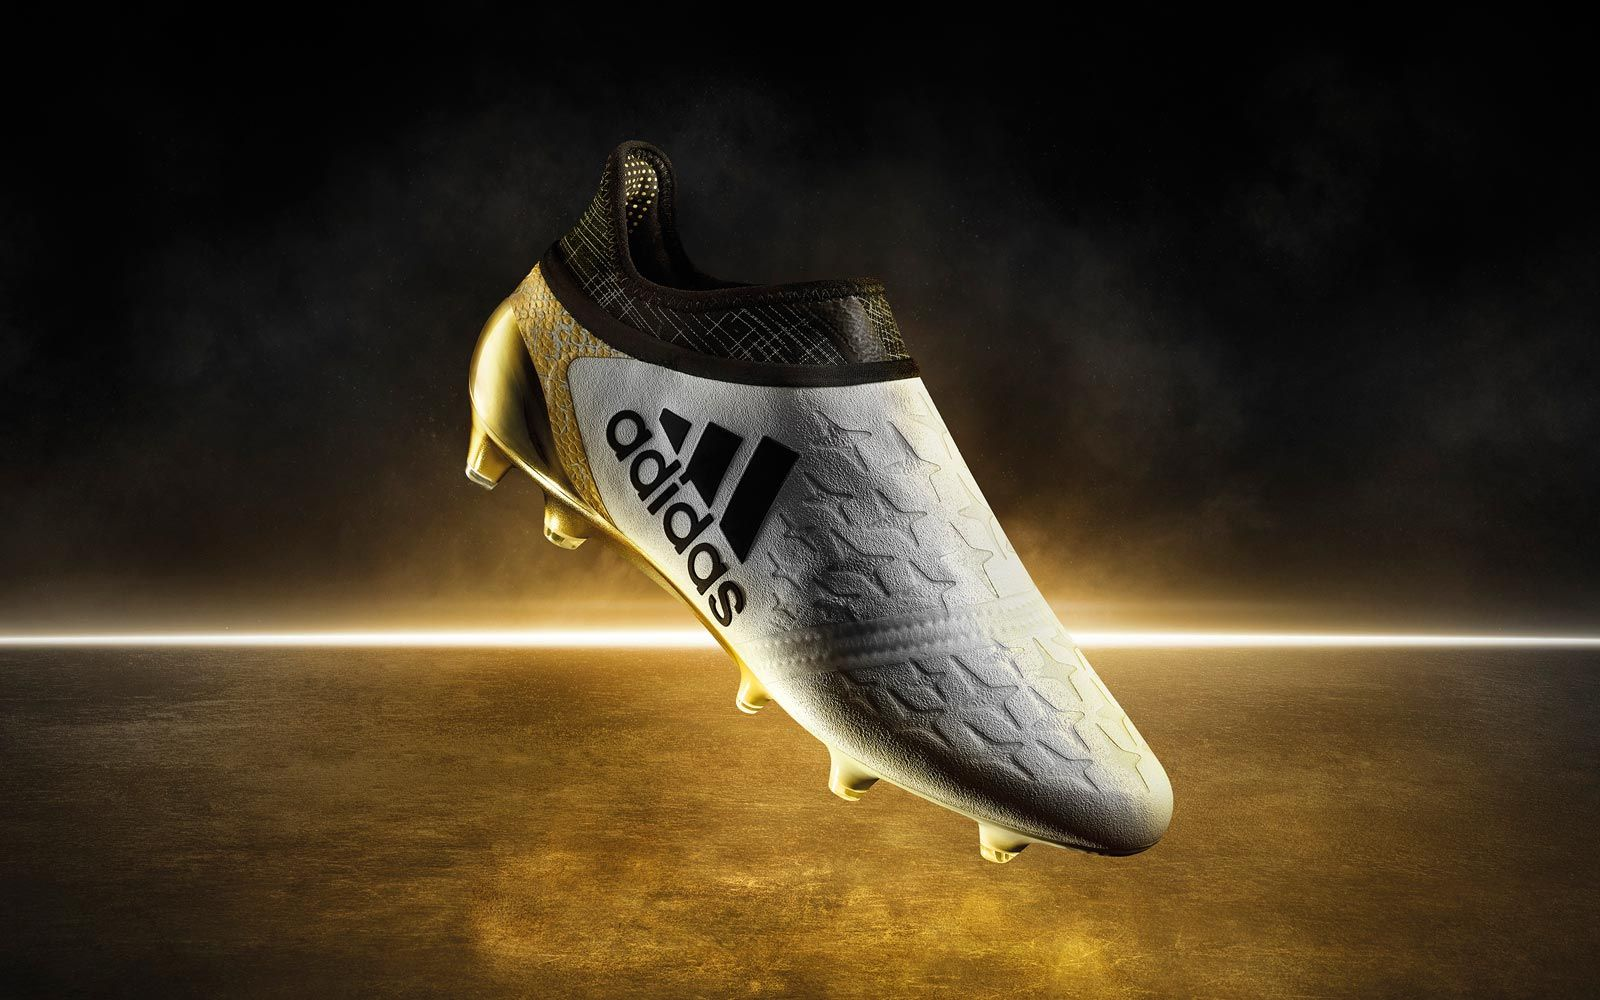 Adidas X 16 Purechaos Boots From The Stellar Pack Soccer Boots Shoe Poster New Balance Boots